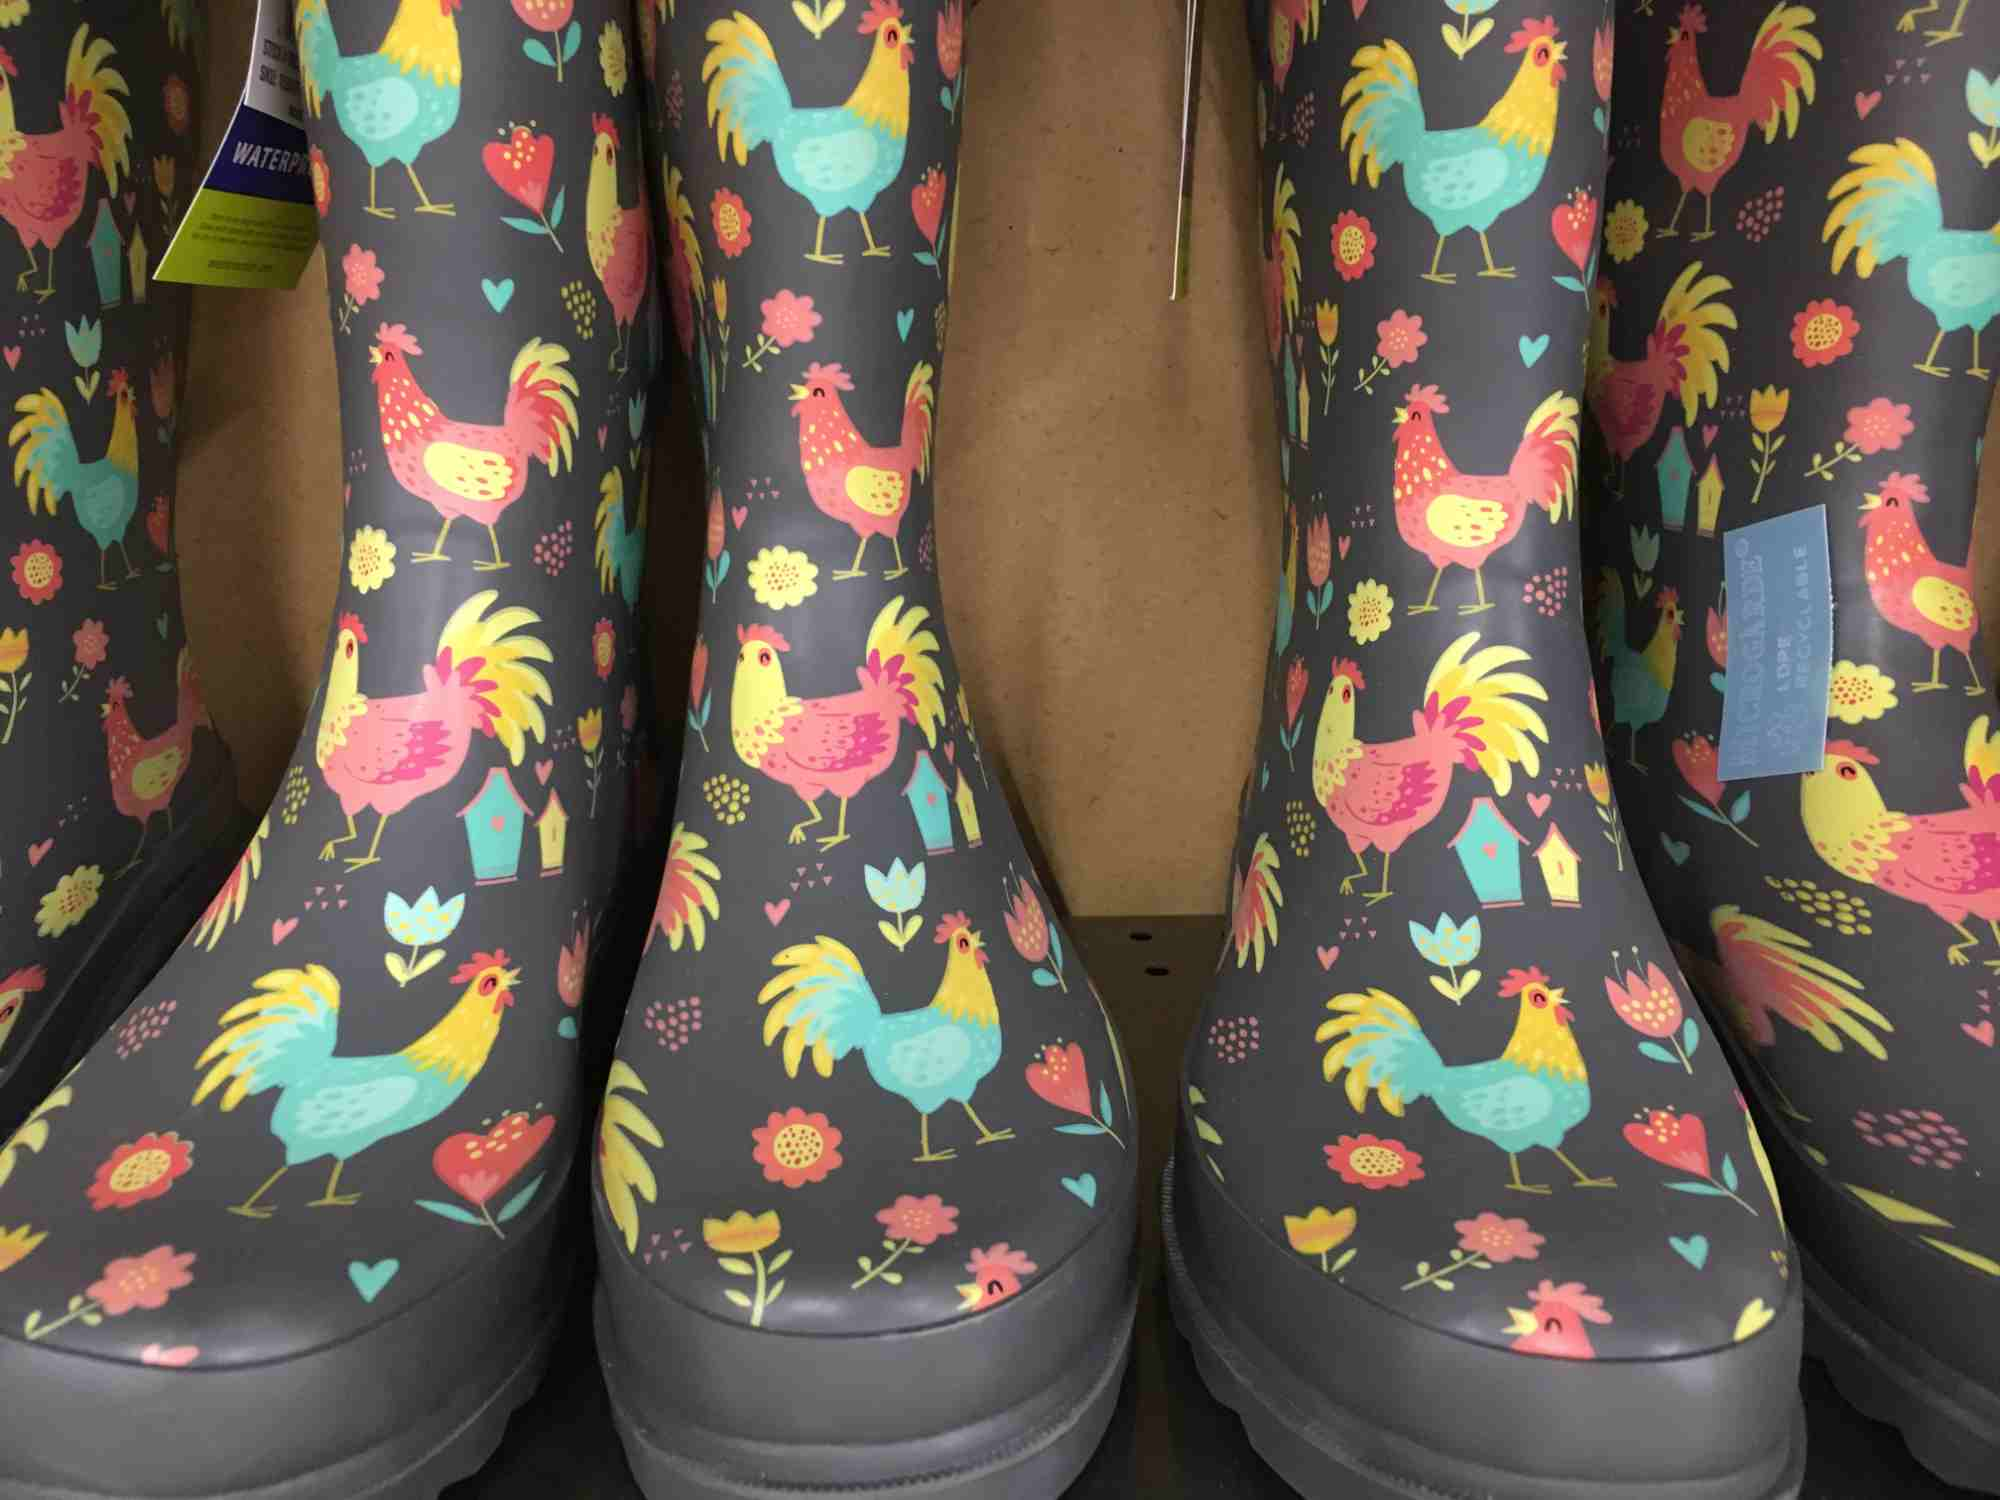 rainboots at Tractor Supply in Truth or Consequences